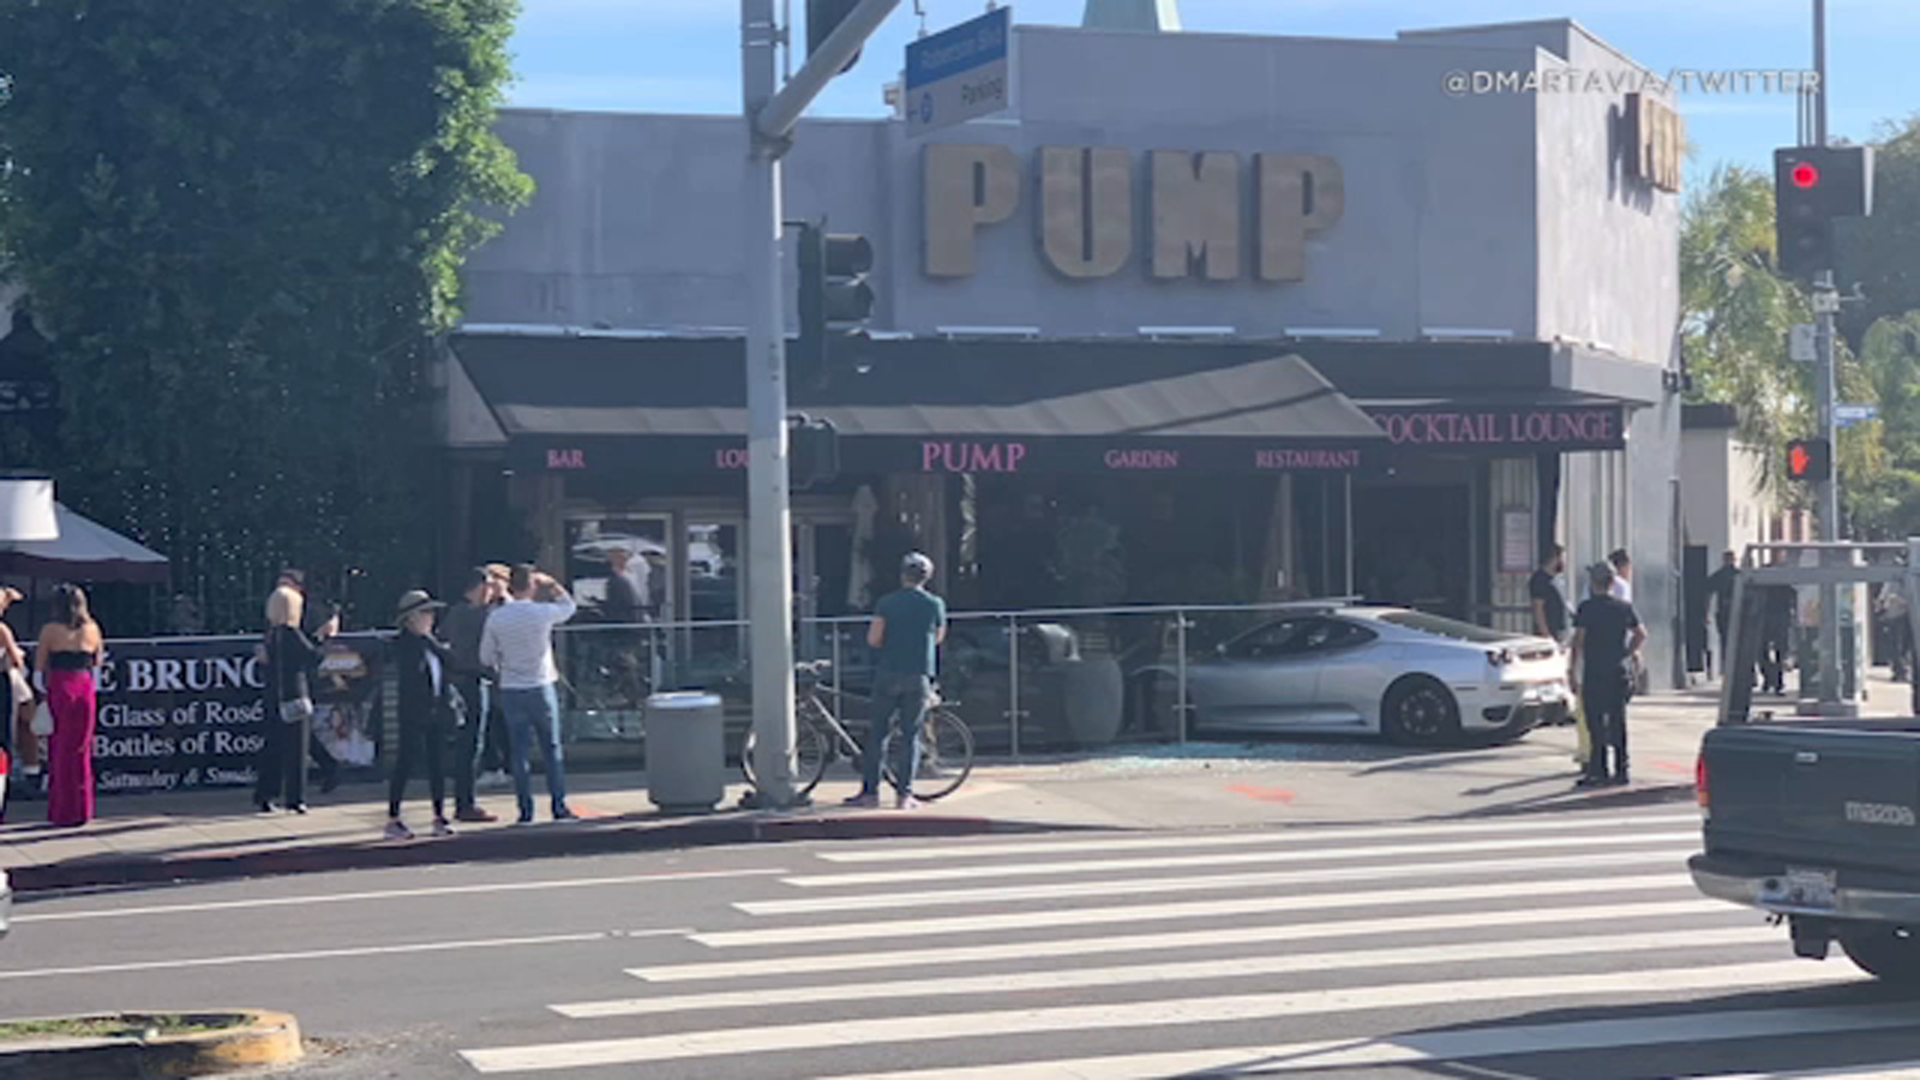 A Ferrari crashed into reality star Lisa Vanderpump's restaurant Pump in West Hollywood.